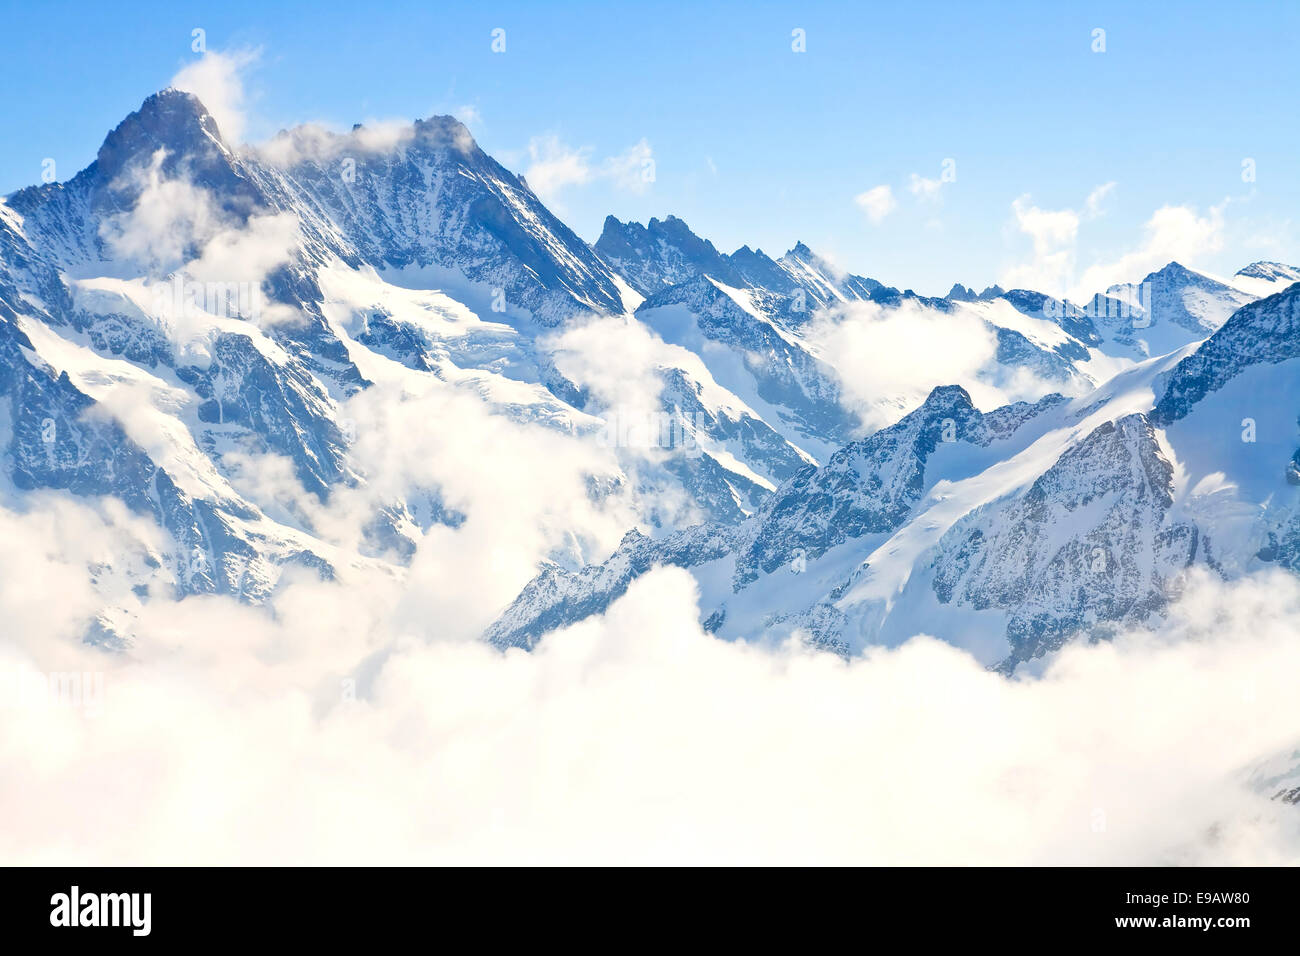 Jungfrau region in Swiss Alps, Switzerland - Stock Image